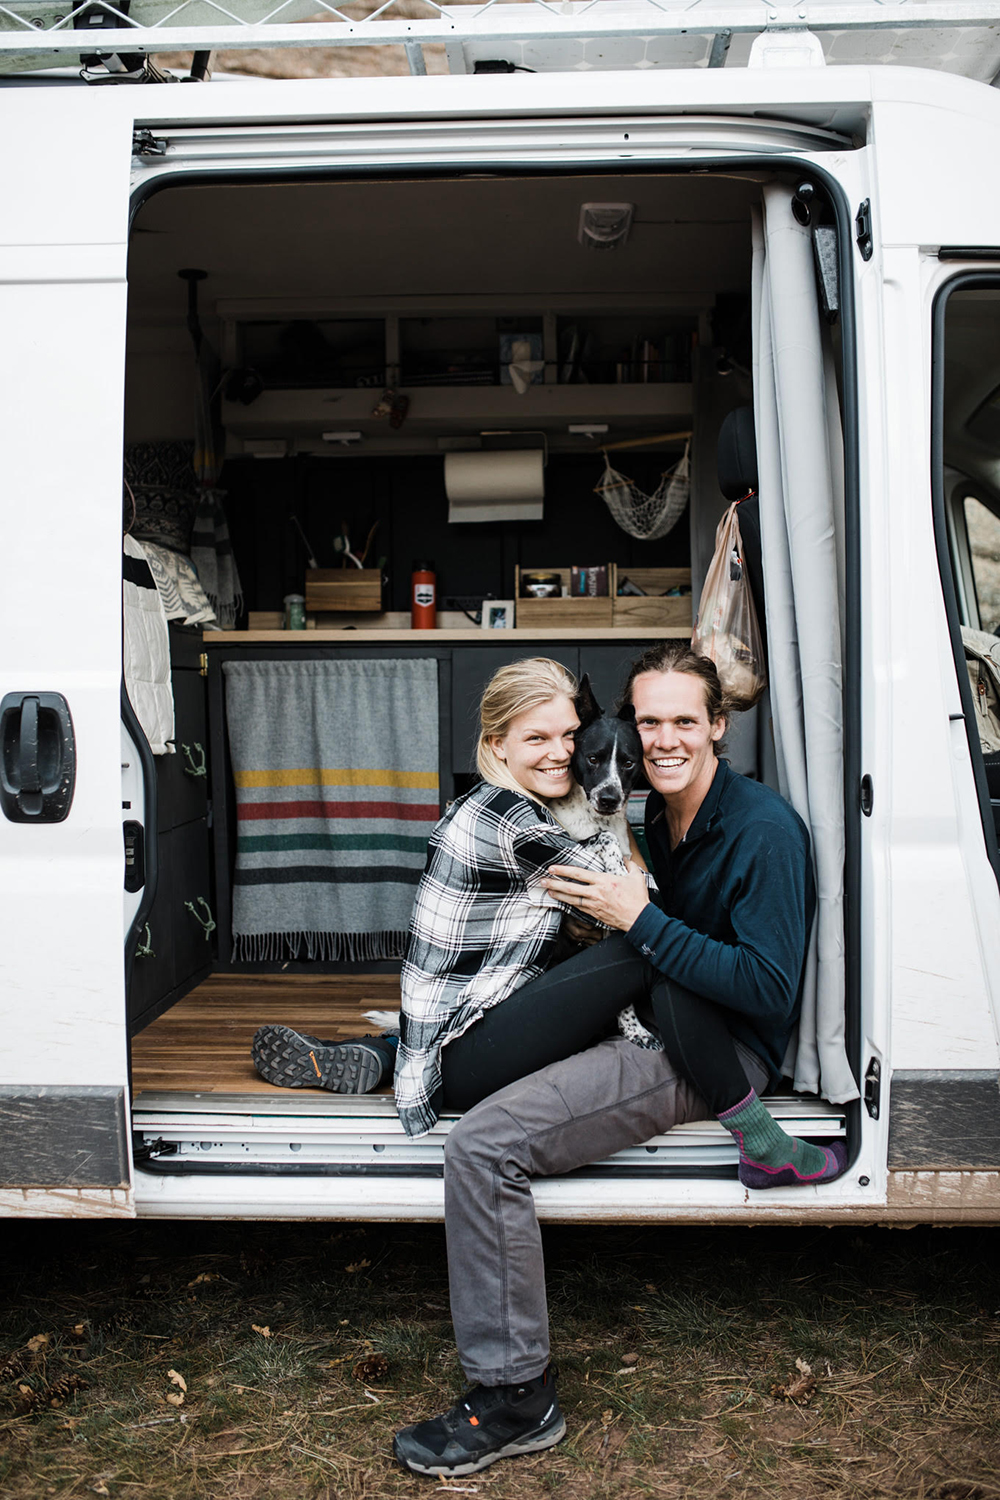 Abbi and Callen in their self-converted camper van